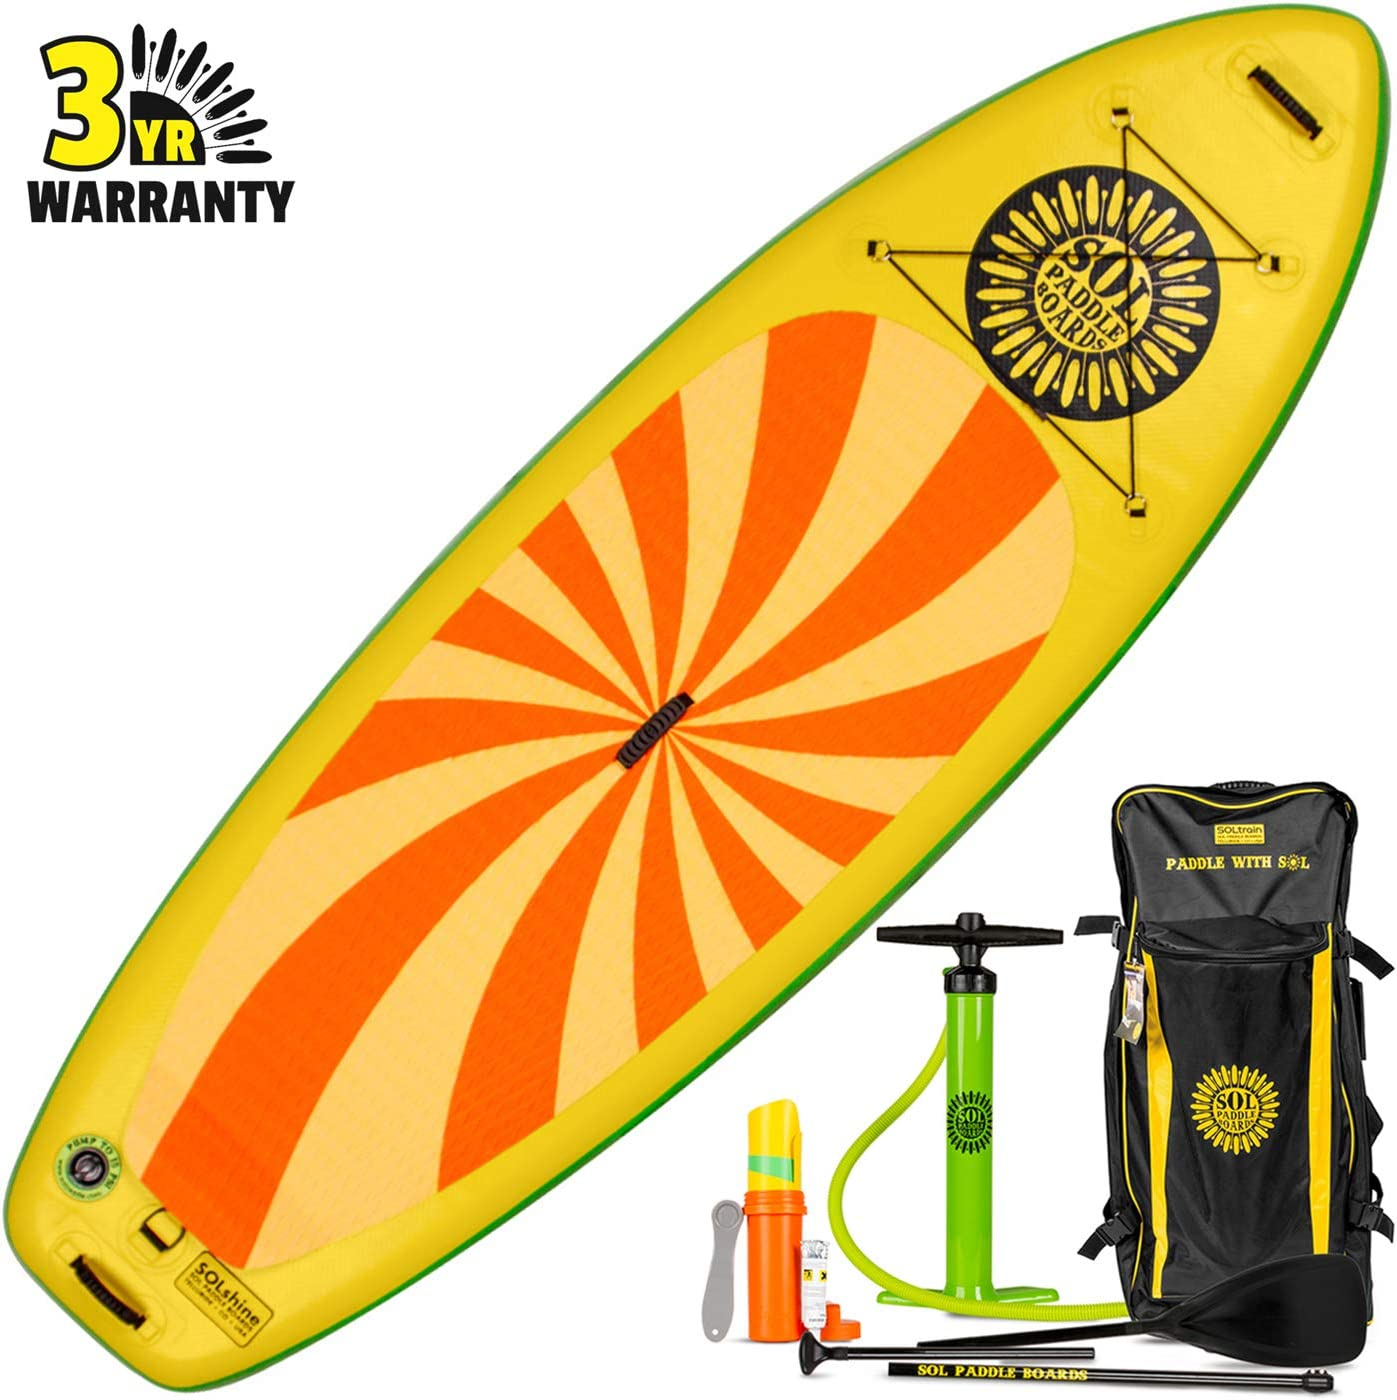 SOL Solshine 9 6 Inflatable Stand-Up Paddleboard